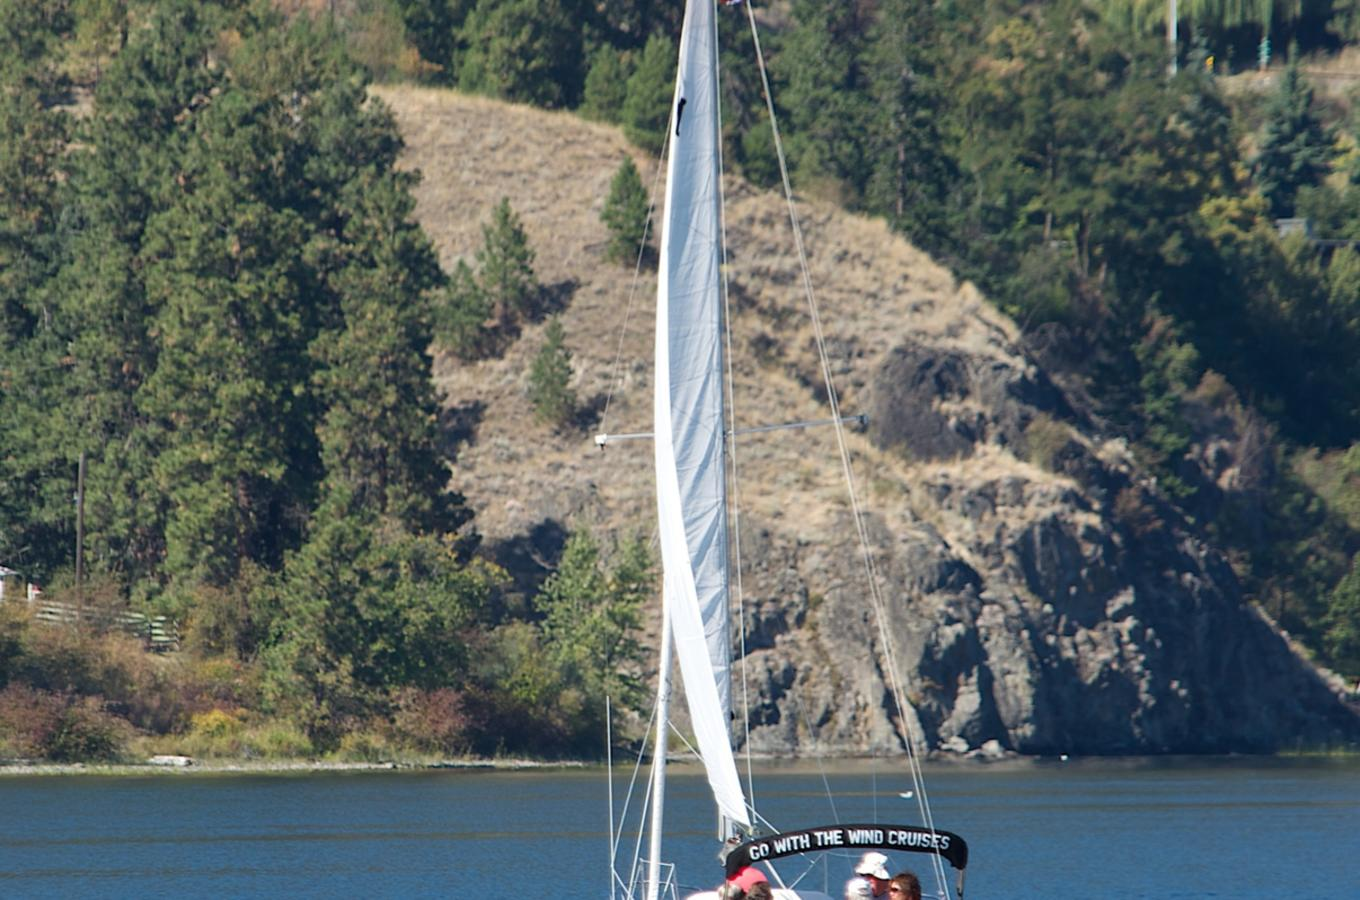 Go With the Wind Cruises